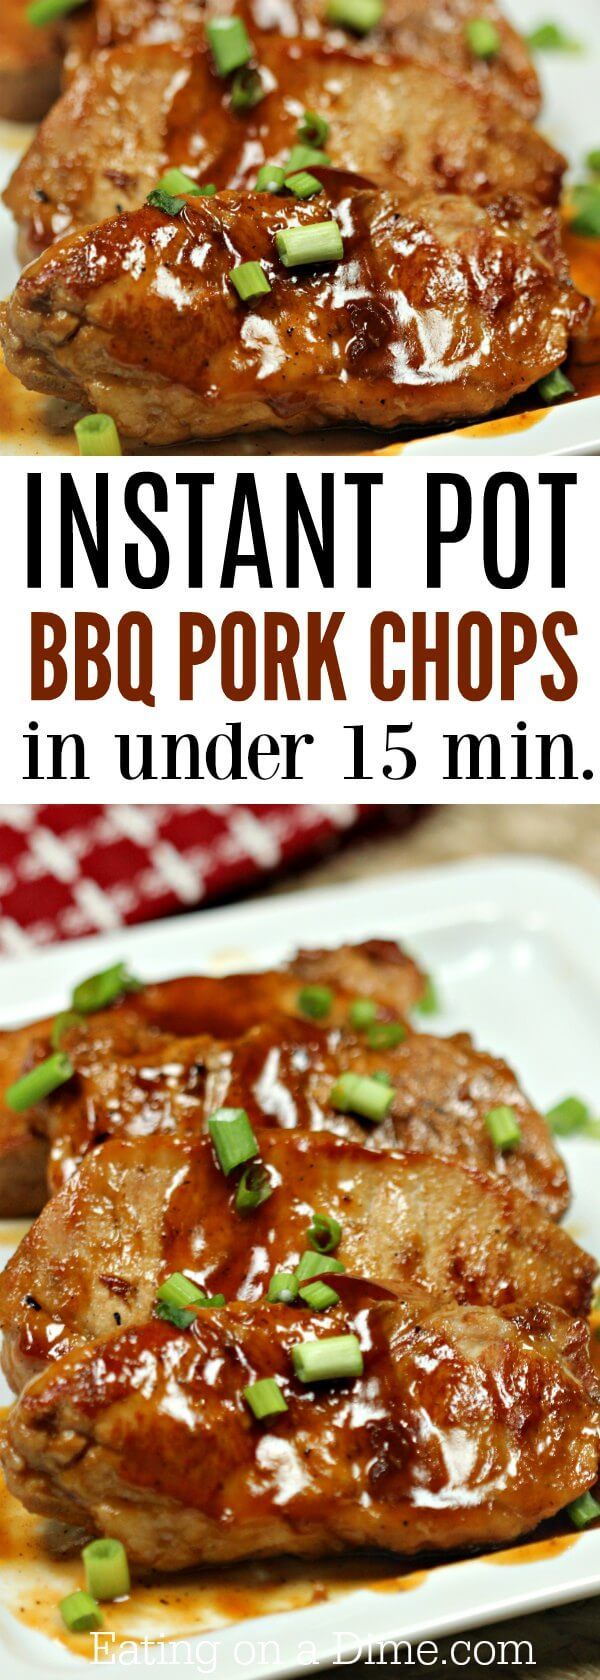 Everyone will love this Instant Pot BBQ Pork Chops Recipe! BBQ Boneless Pork Chops Recipe is incredibly simple. Try BBQ Pork Chops Pressure Cooker Recipe today!